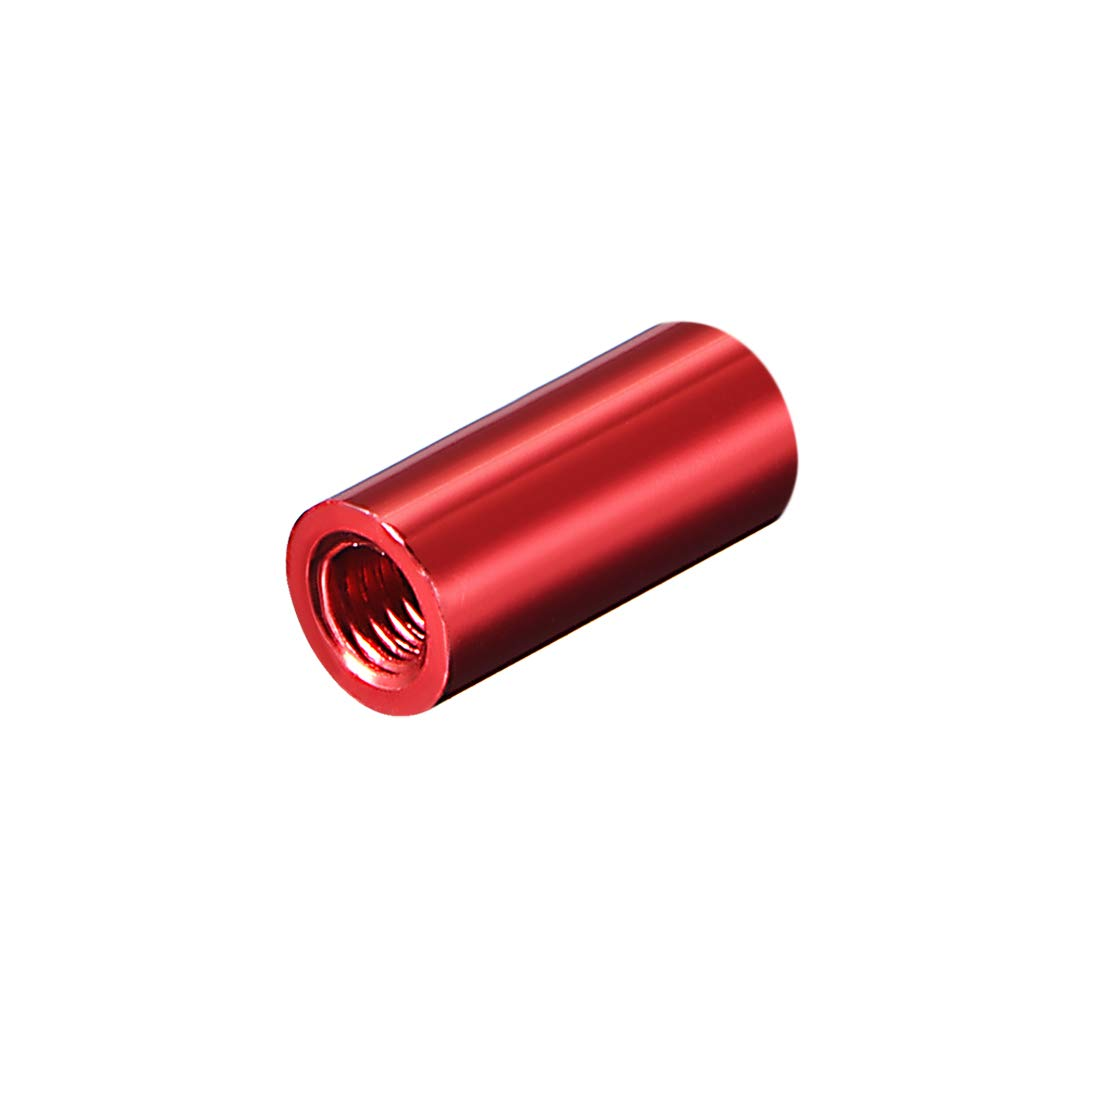 uxcell Round Aluminum Standoff Column Spacer M3x15mm,for RC Airplane,FPV Quadcopter,CNC,Red,10pcs